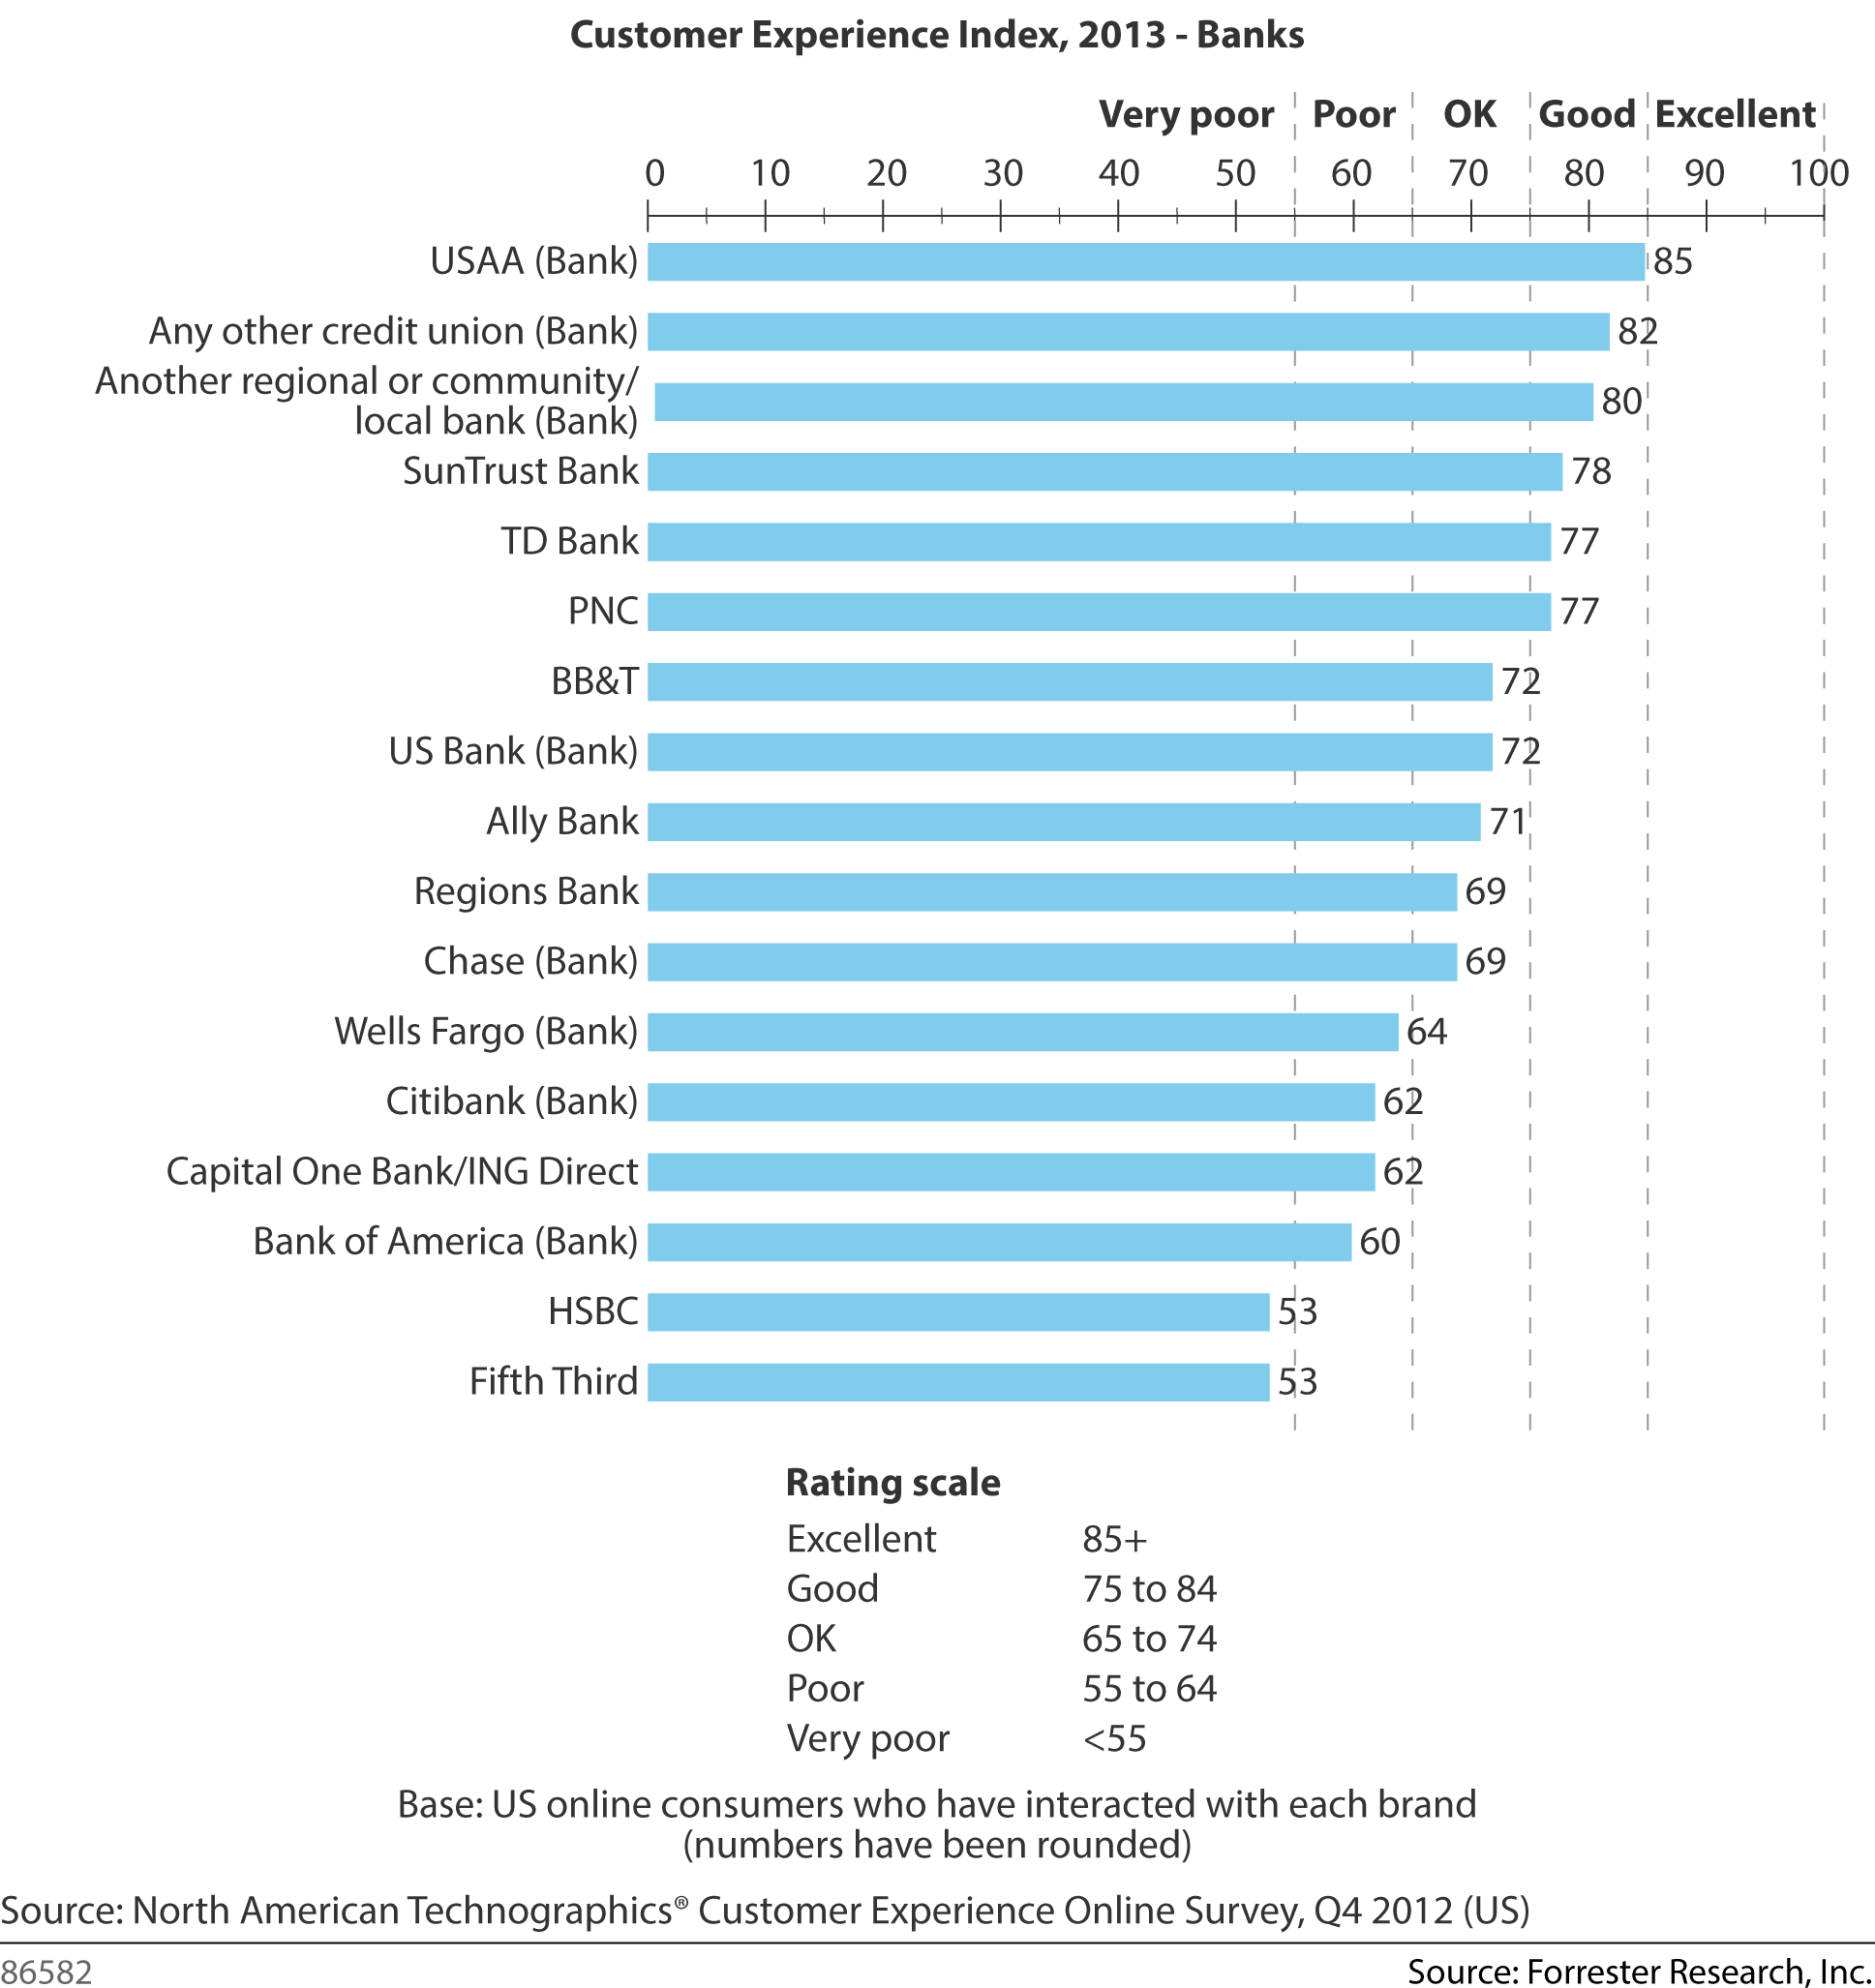 Forrester Customer Experience Index - 2013 - Banks